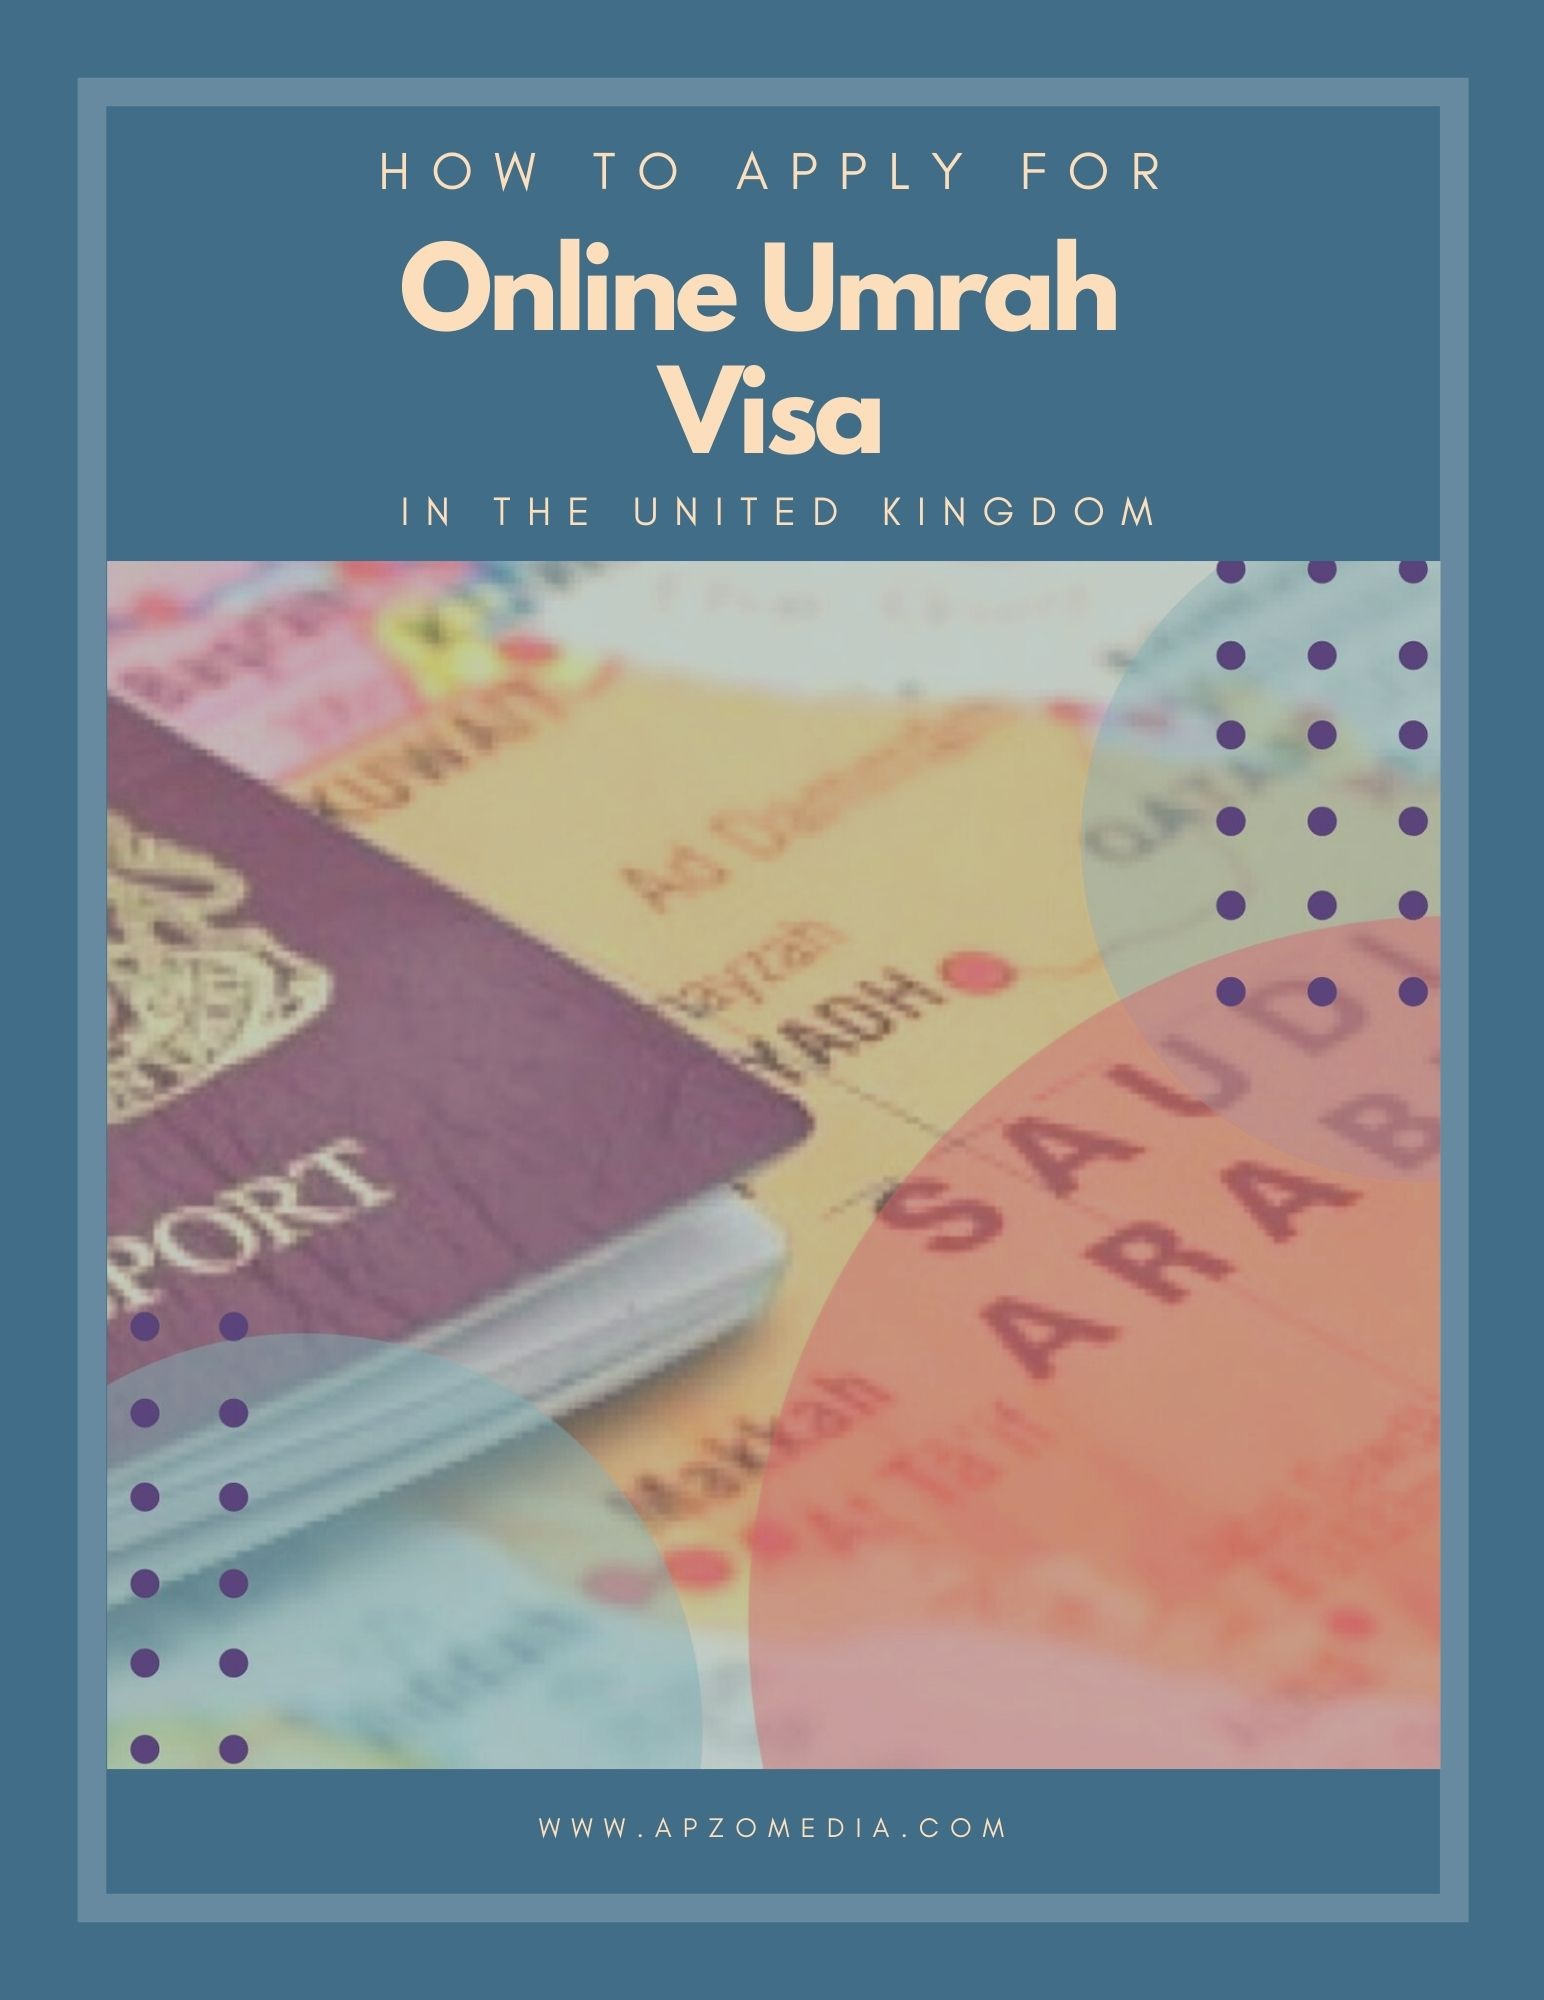 How to Apply for Online Umrah Visa in the United Kingdom